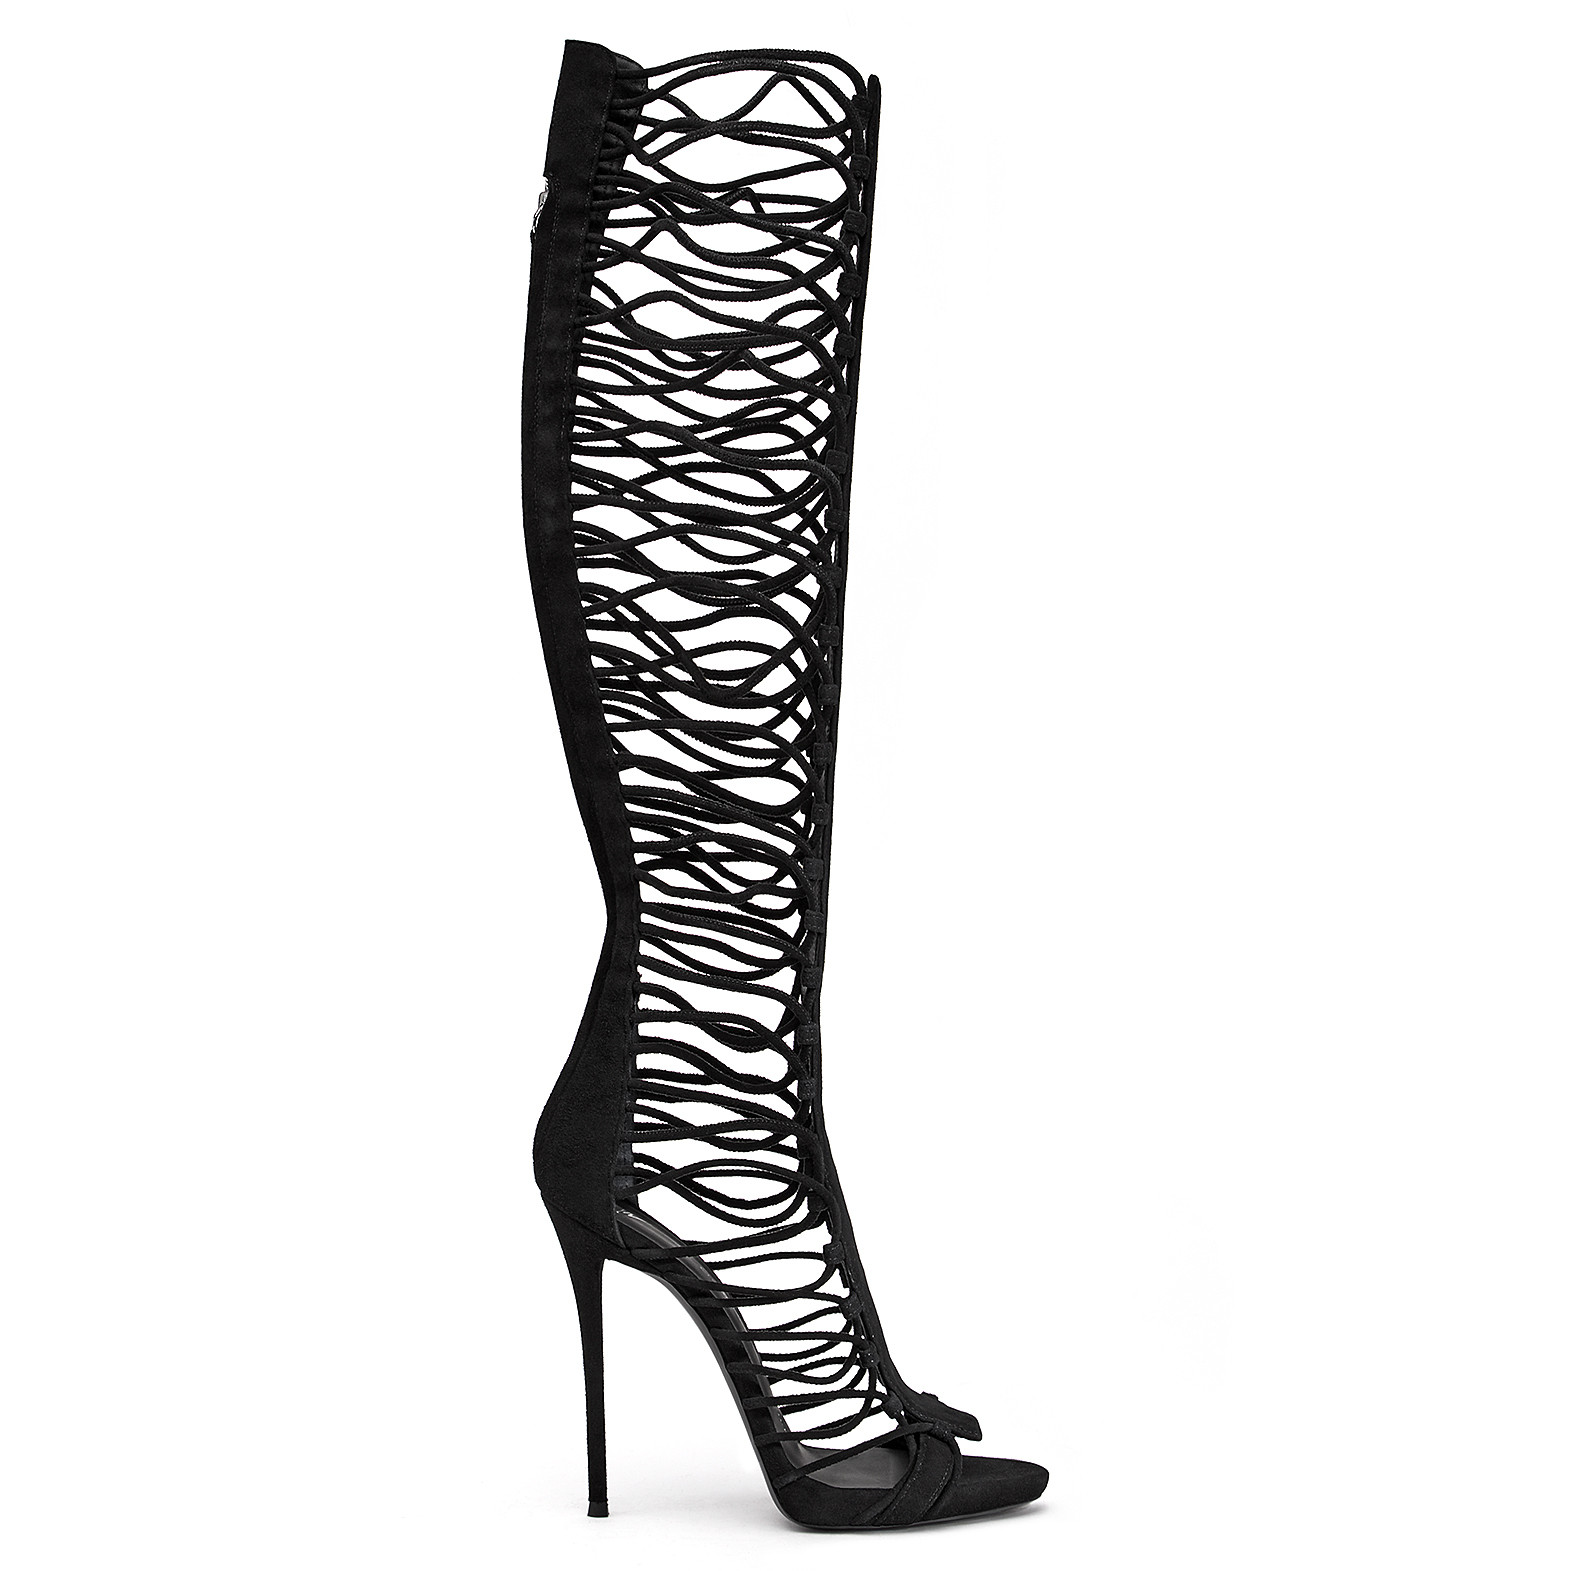 Zoey corded boots by Giuseppe Zanotti